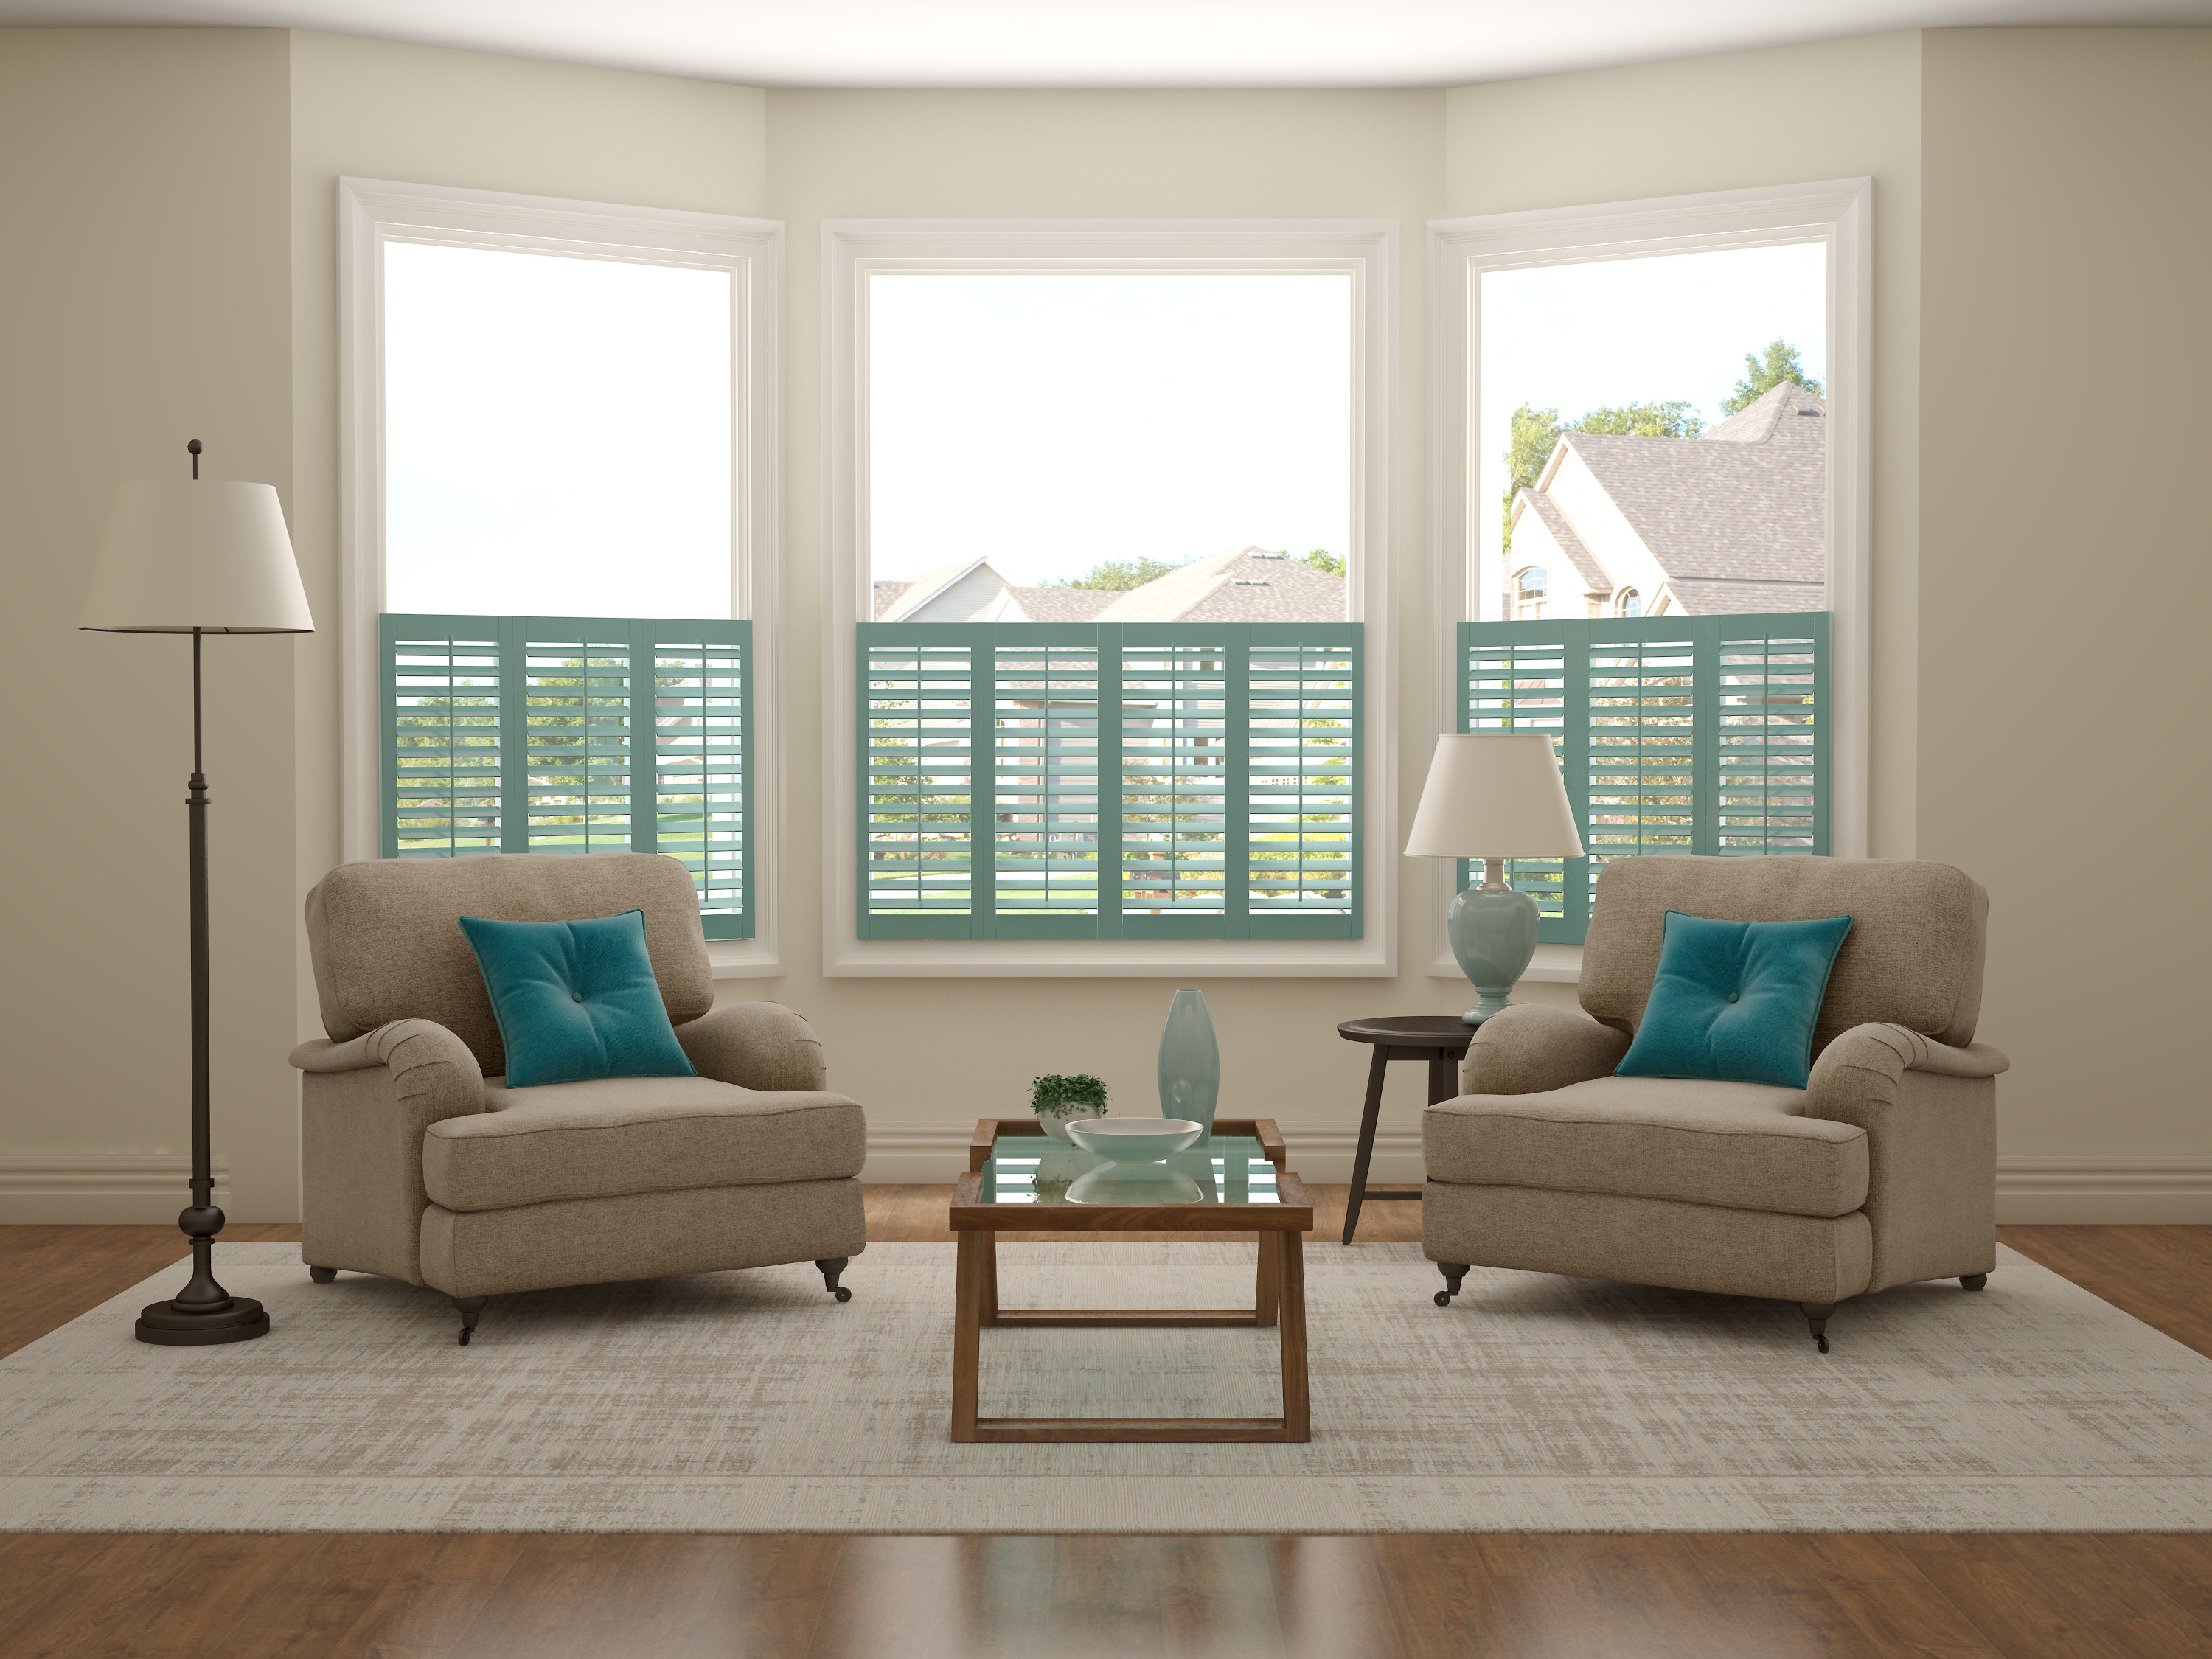 Caf style 3 sided bay window shutters absolute Are plantation shutters still in style 2017